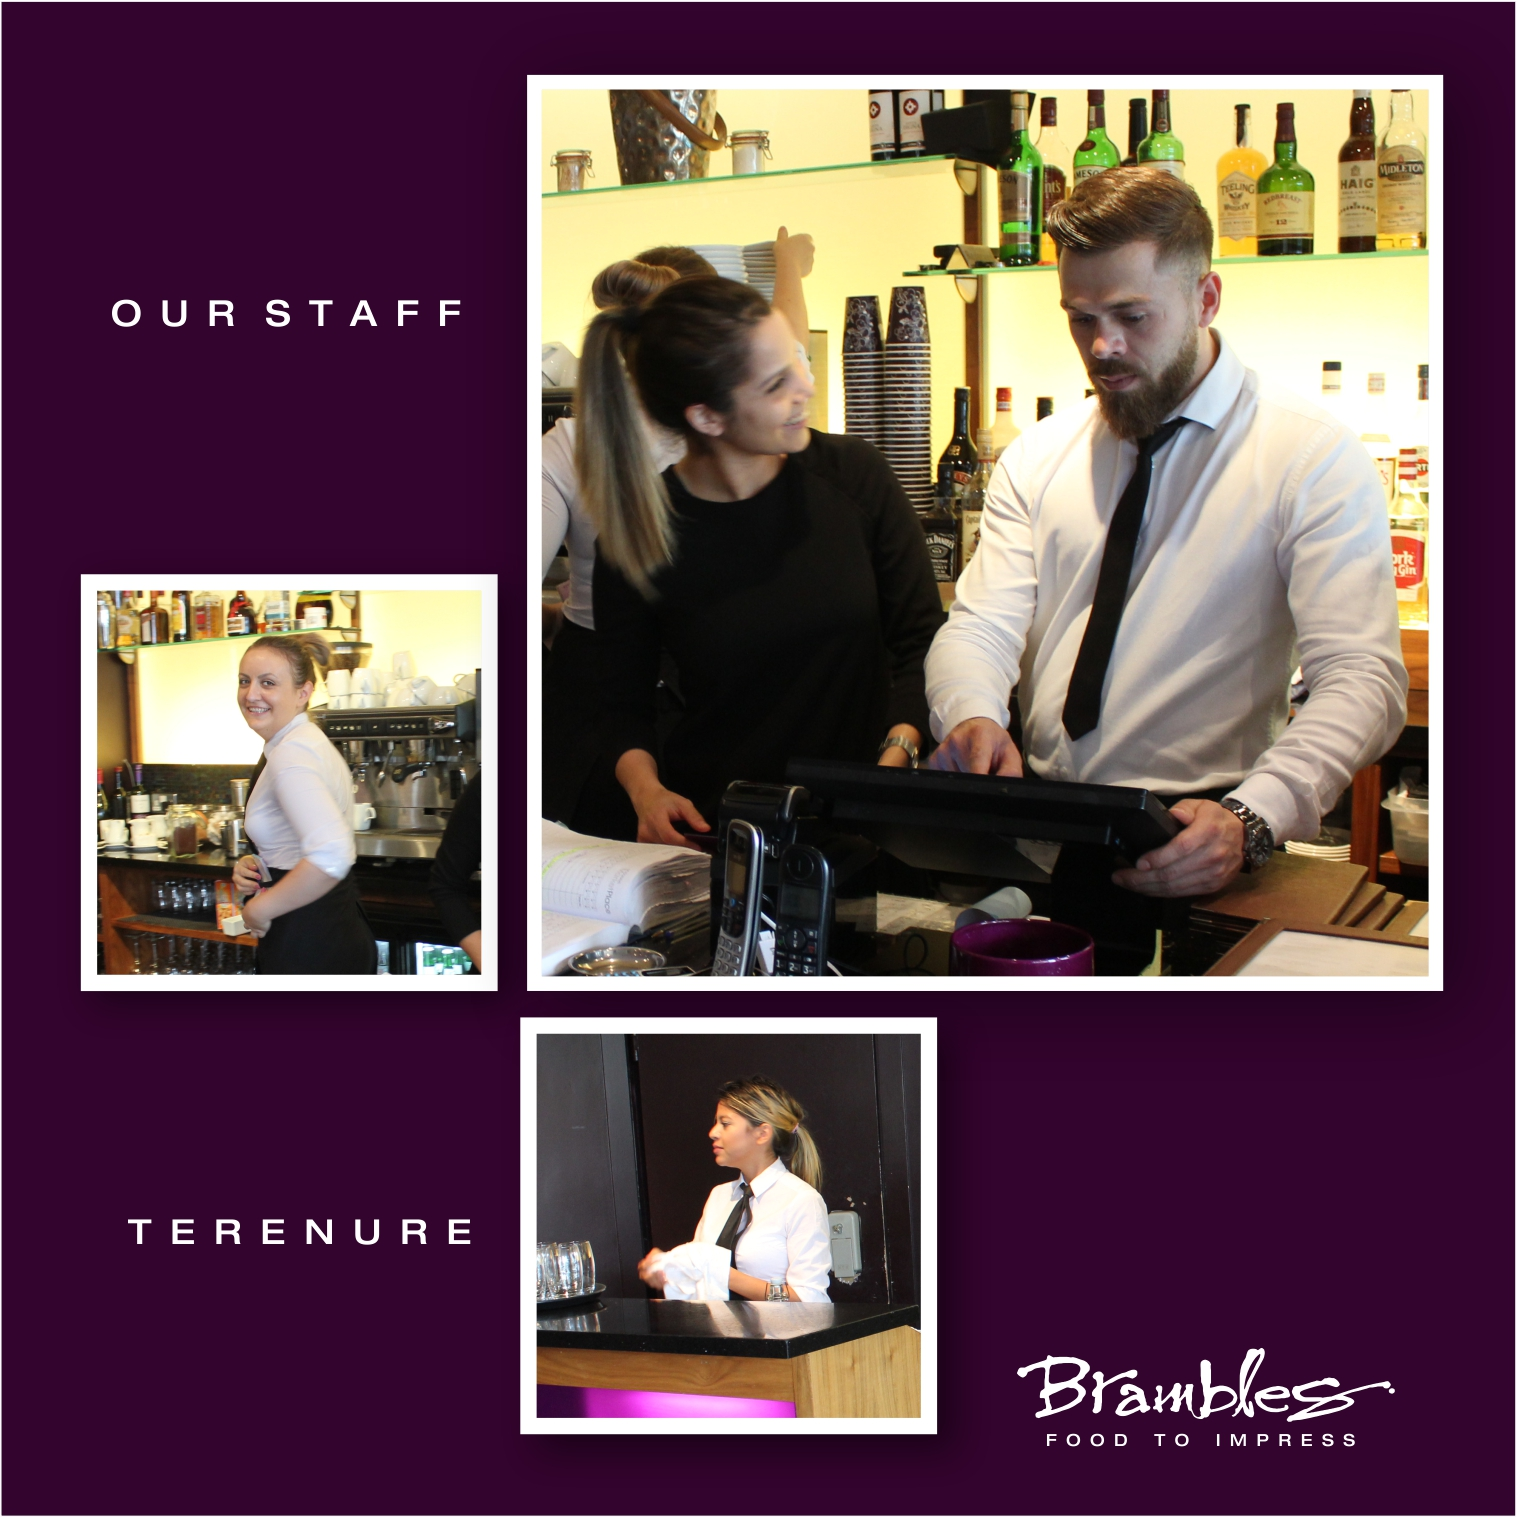 Friendly & welcoming staff for customers